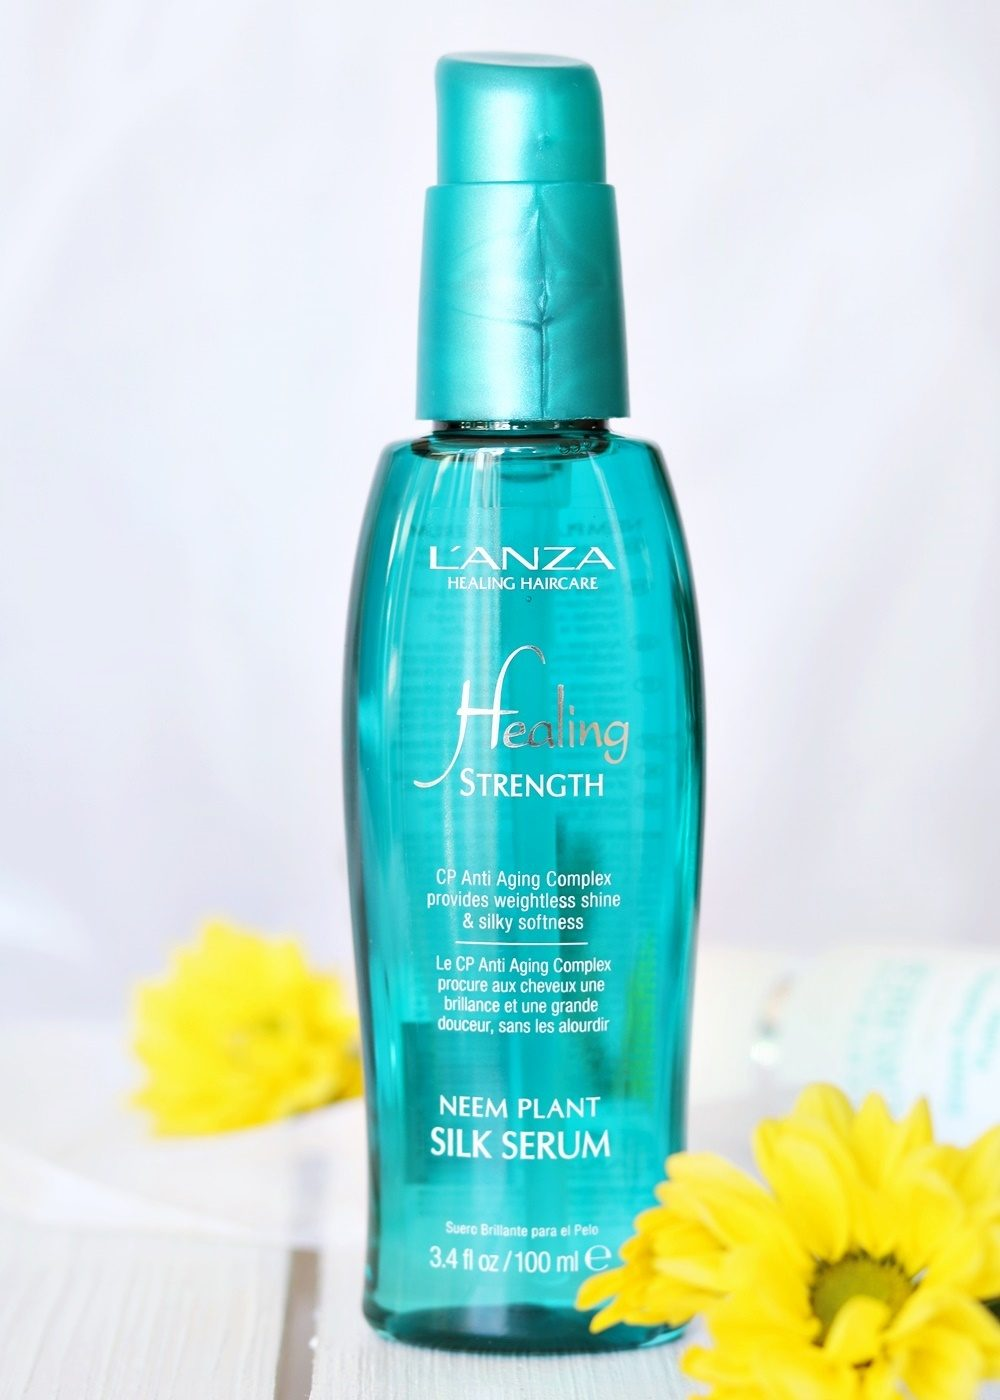 Beautypress Box August 2016 Lanza Haircare Healing Strength Silk Serum